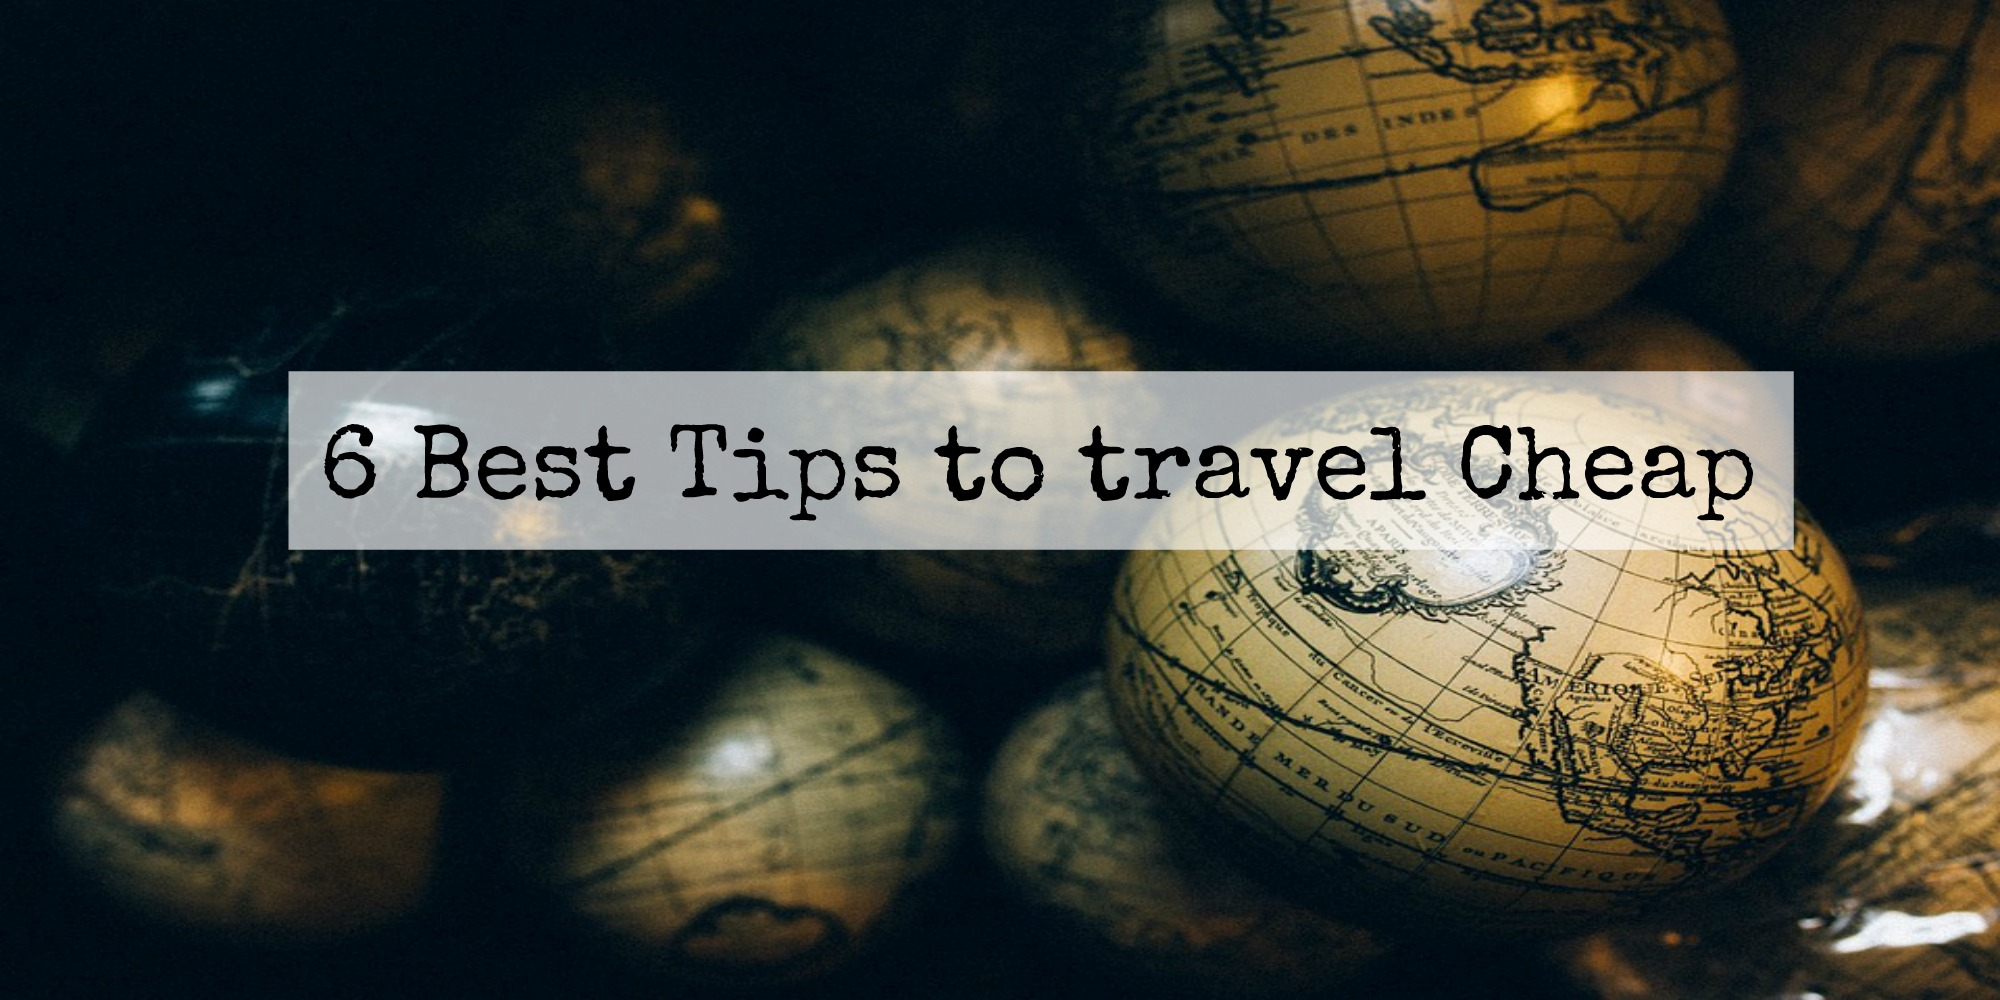 6 best tips to travel cheap